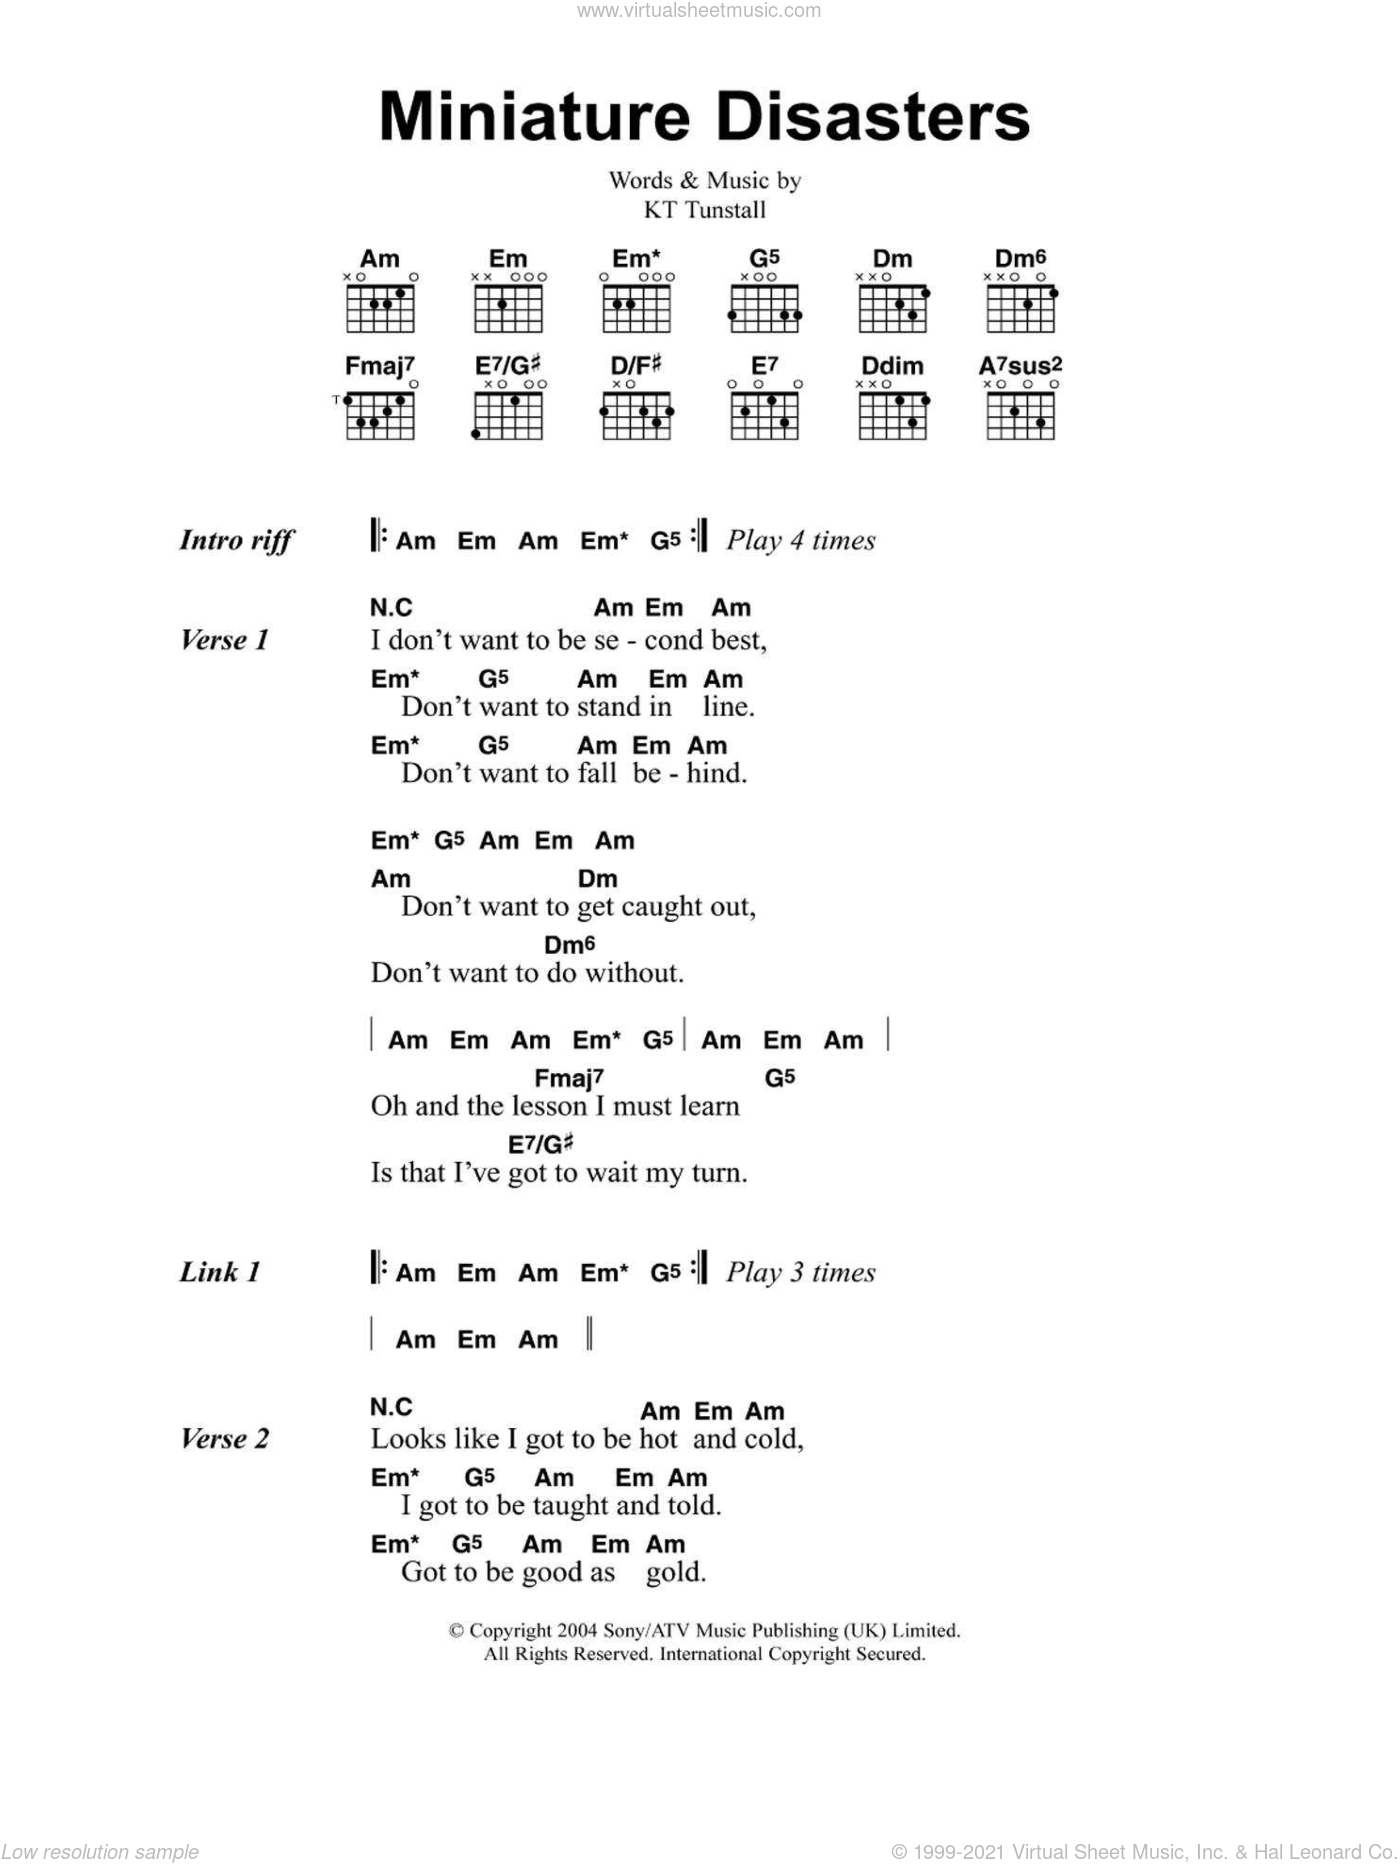 Miniature Disasters sheet music for guitar (chords) by KT Tunstall